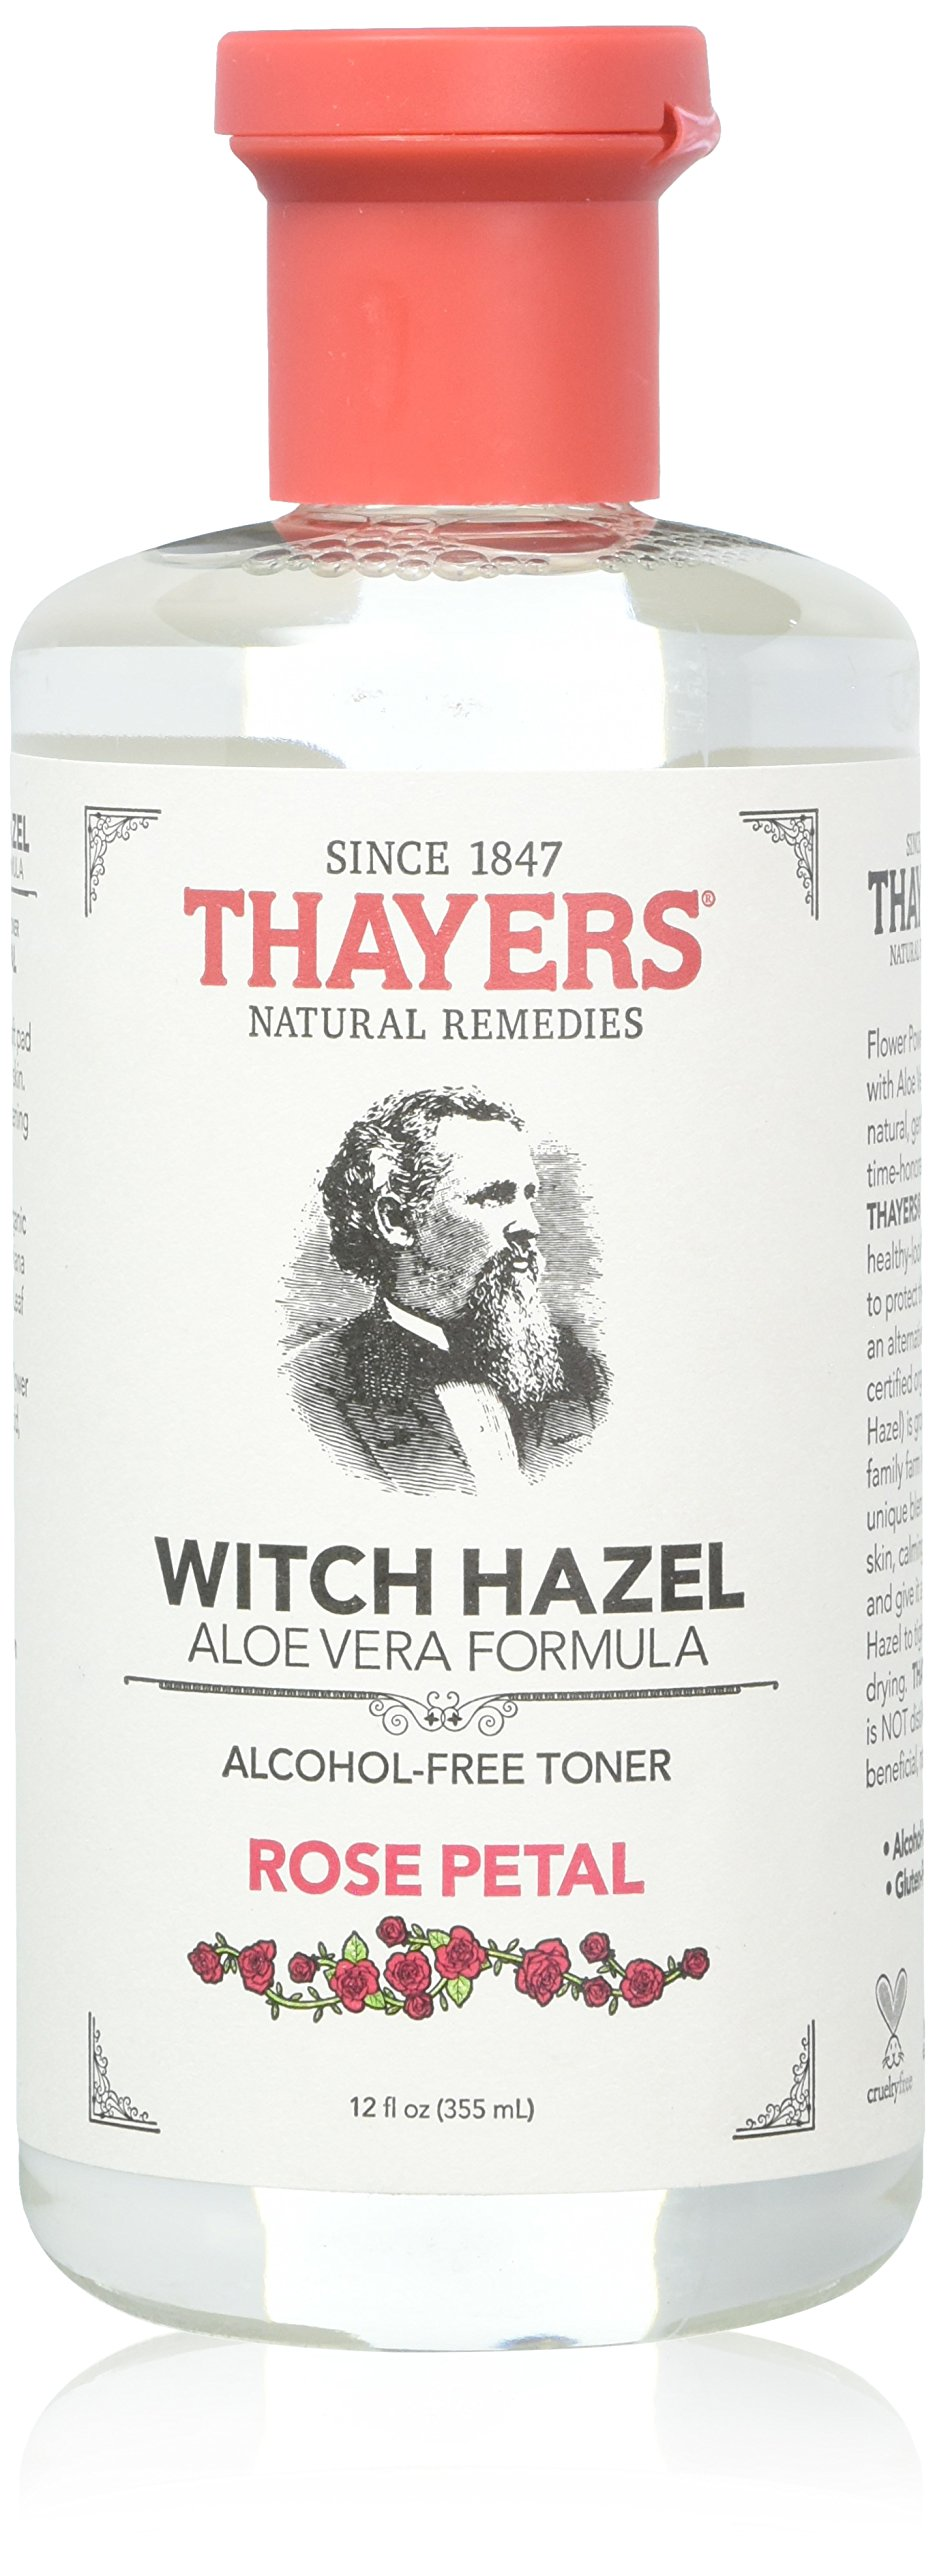 Thayers Alcohol-free Rose Petal Soothing Witch Hazel for Face & Skin with Aloe Vera, 12 oz(Pack of 3) by THAYERS